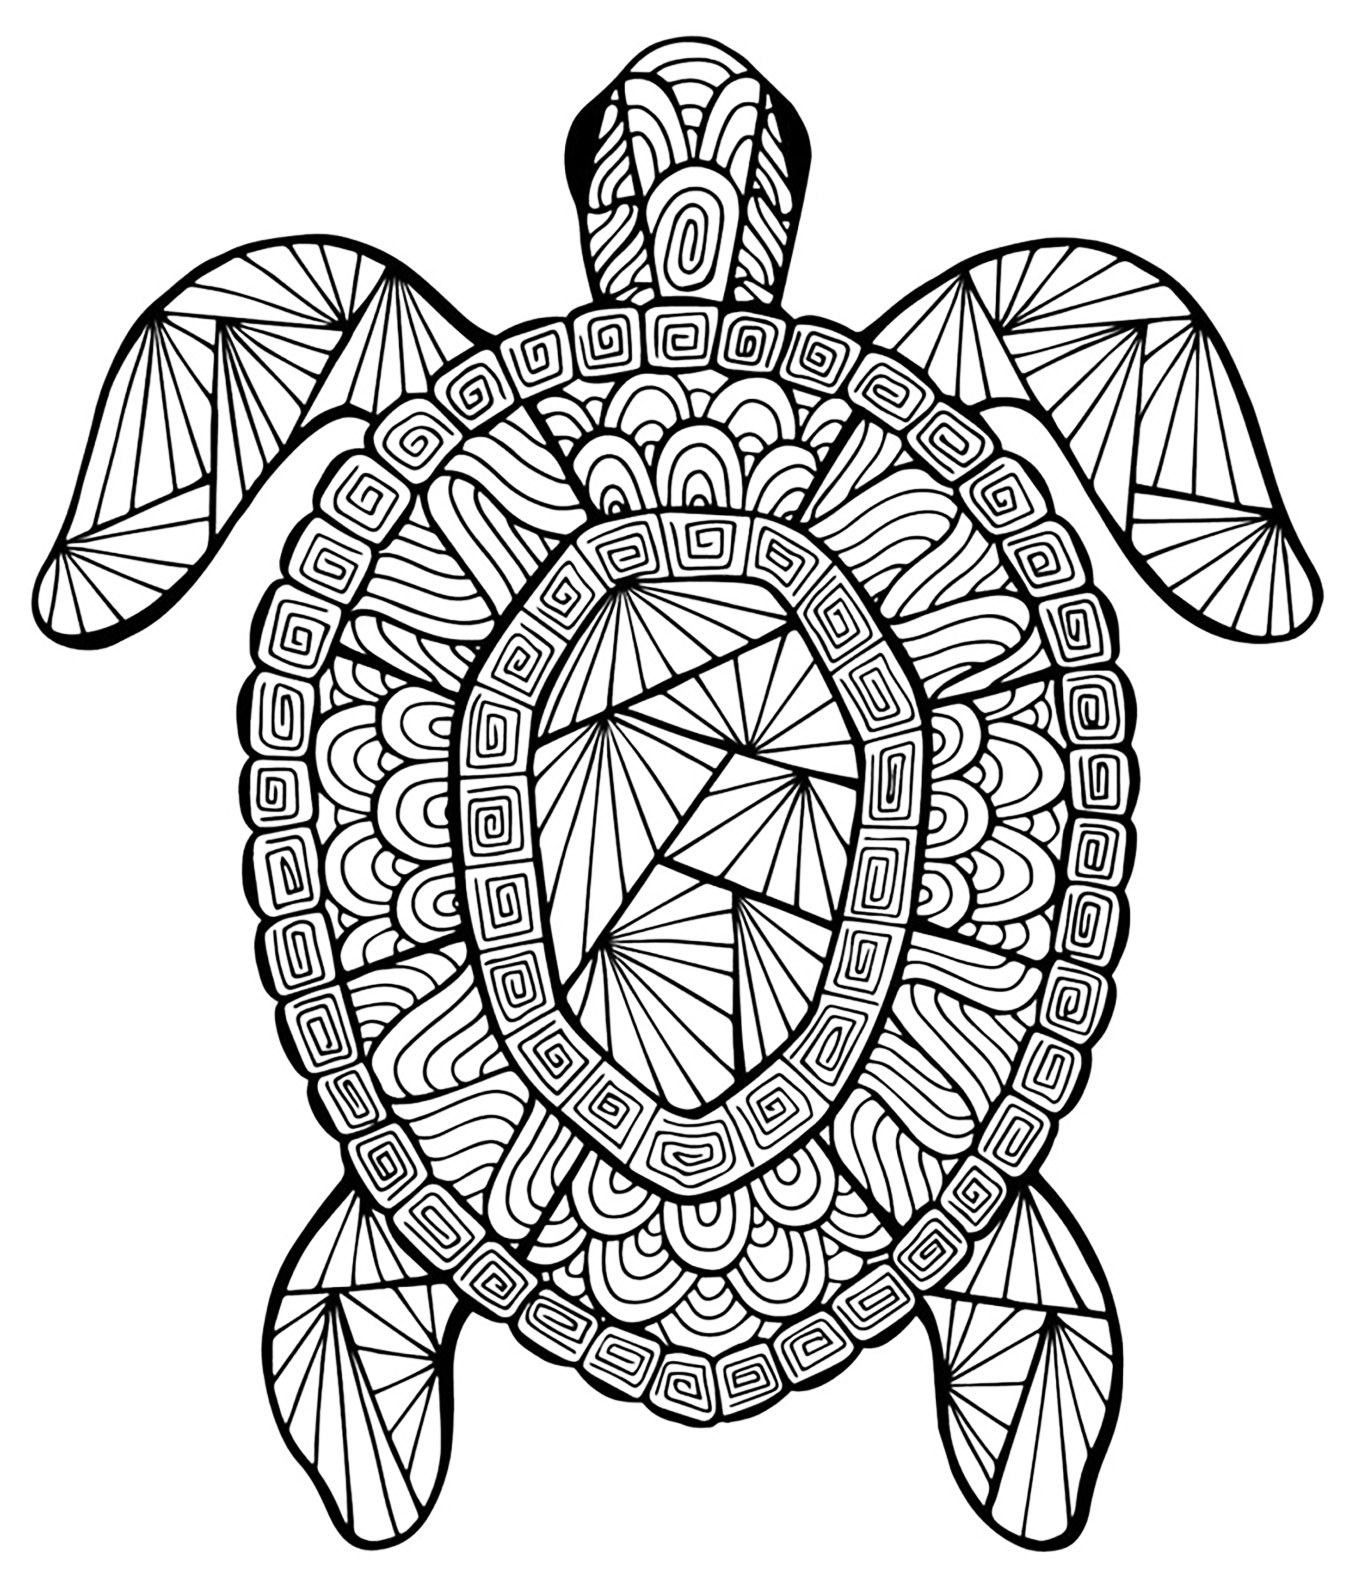 Turtles - Coloring Pages for Adults